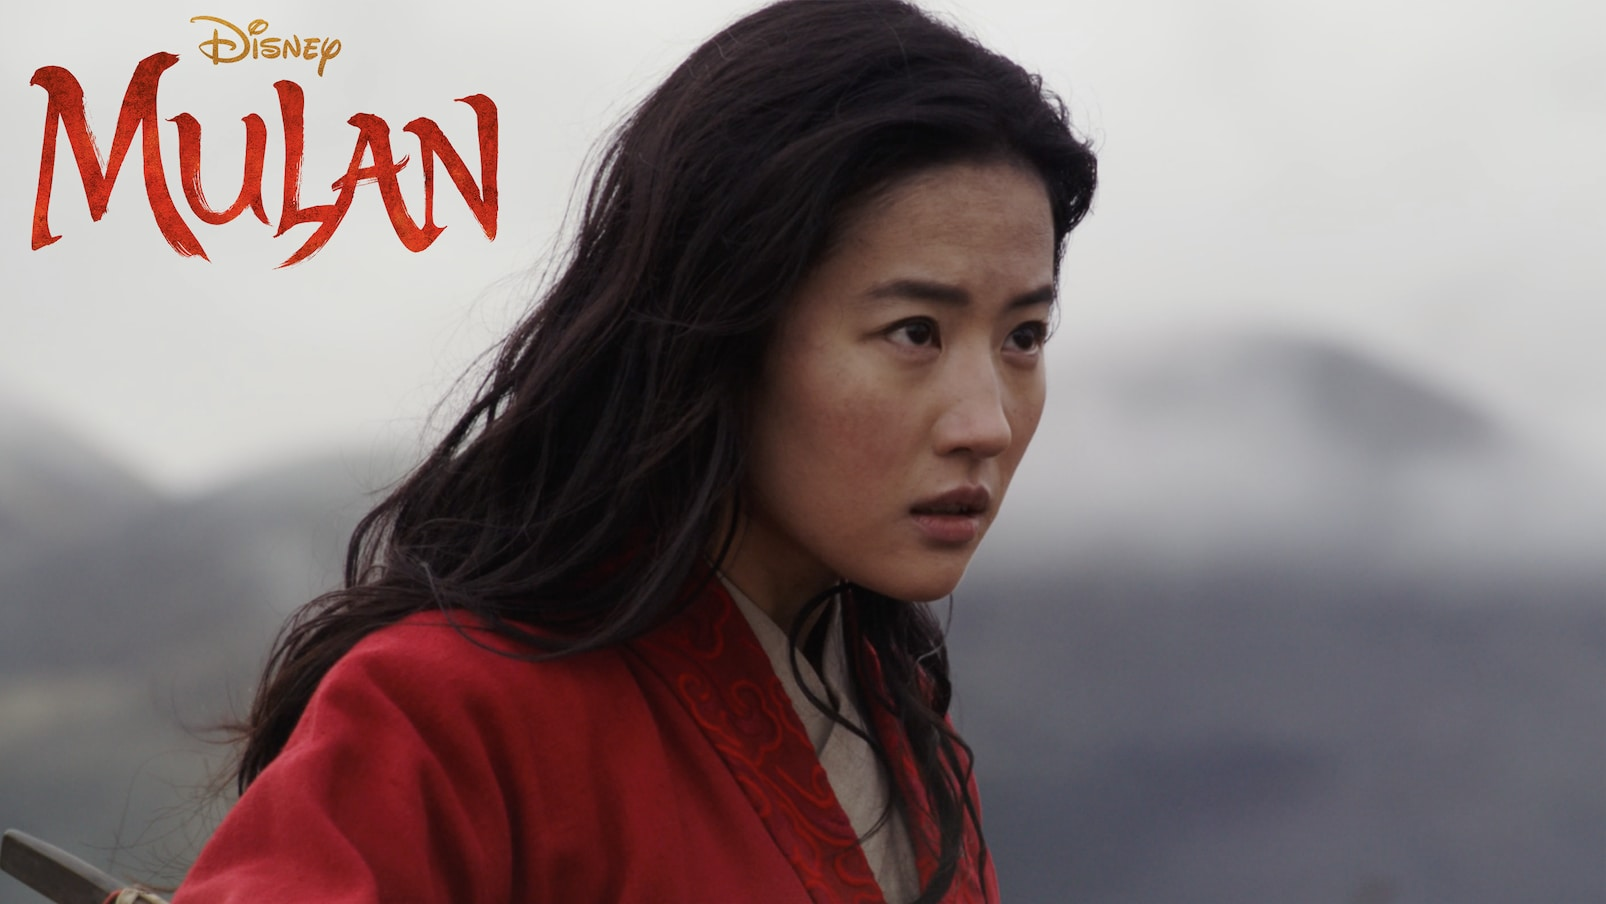 Disney's Mulan I Tickets Now Available!